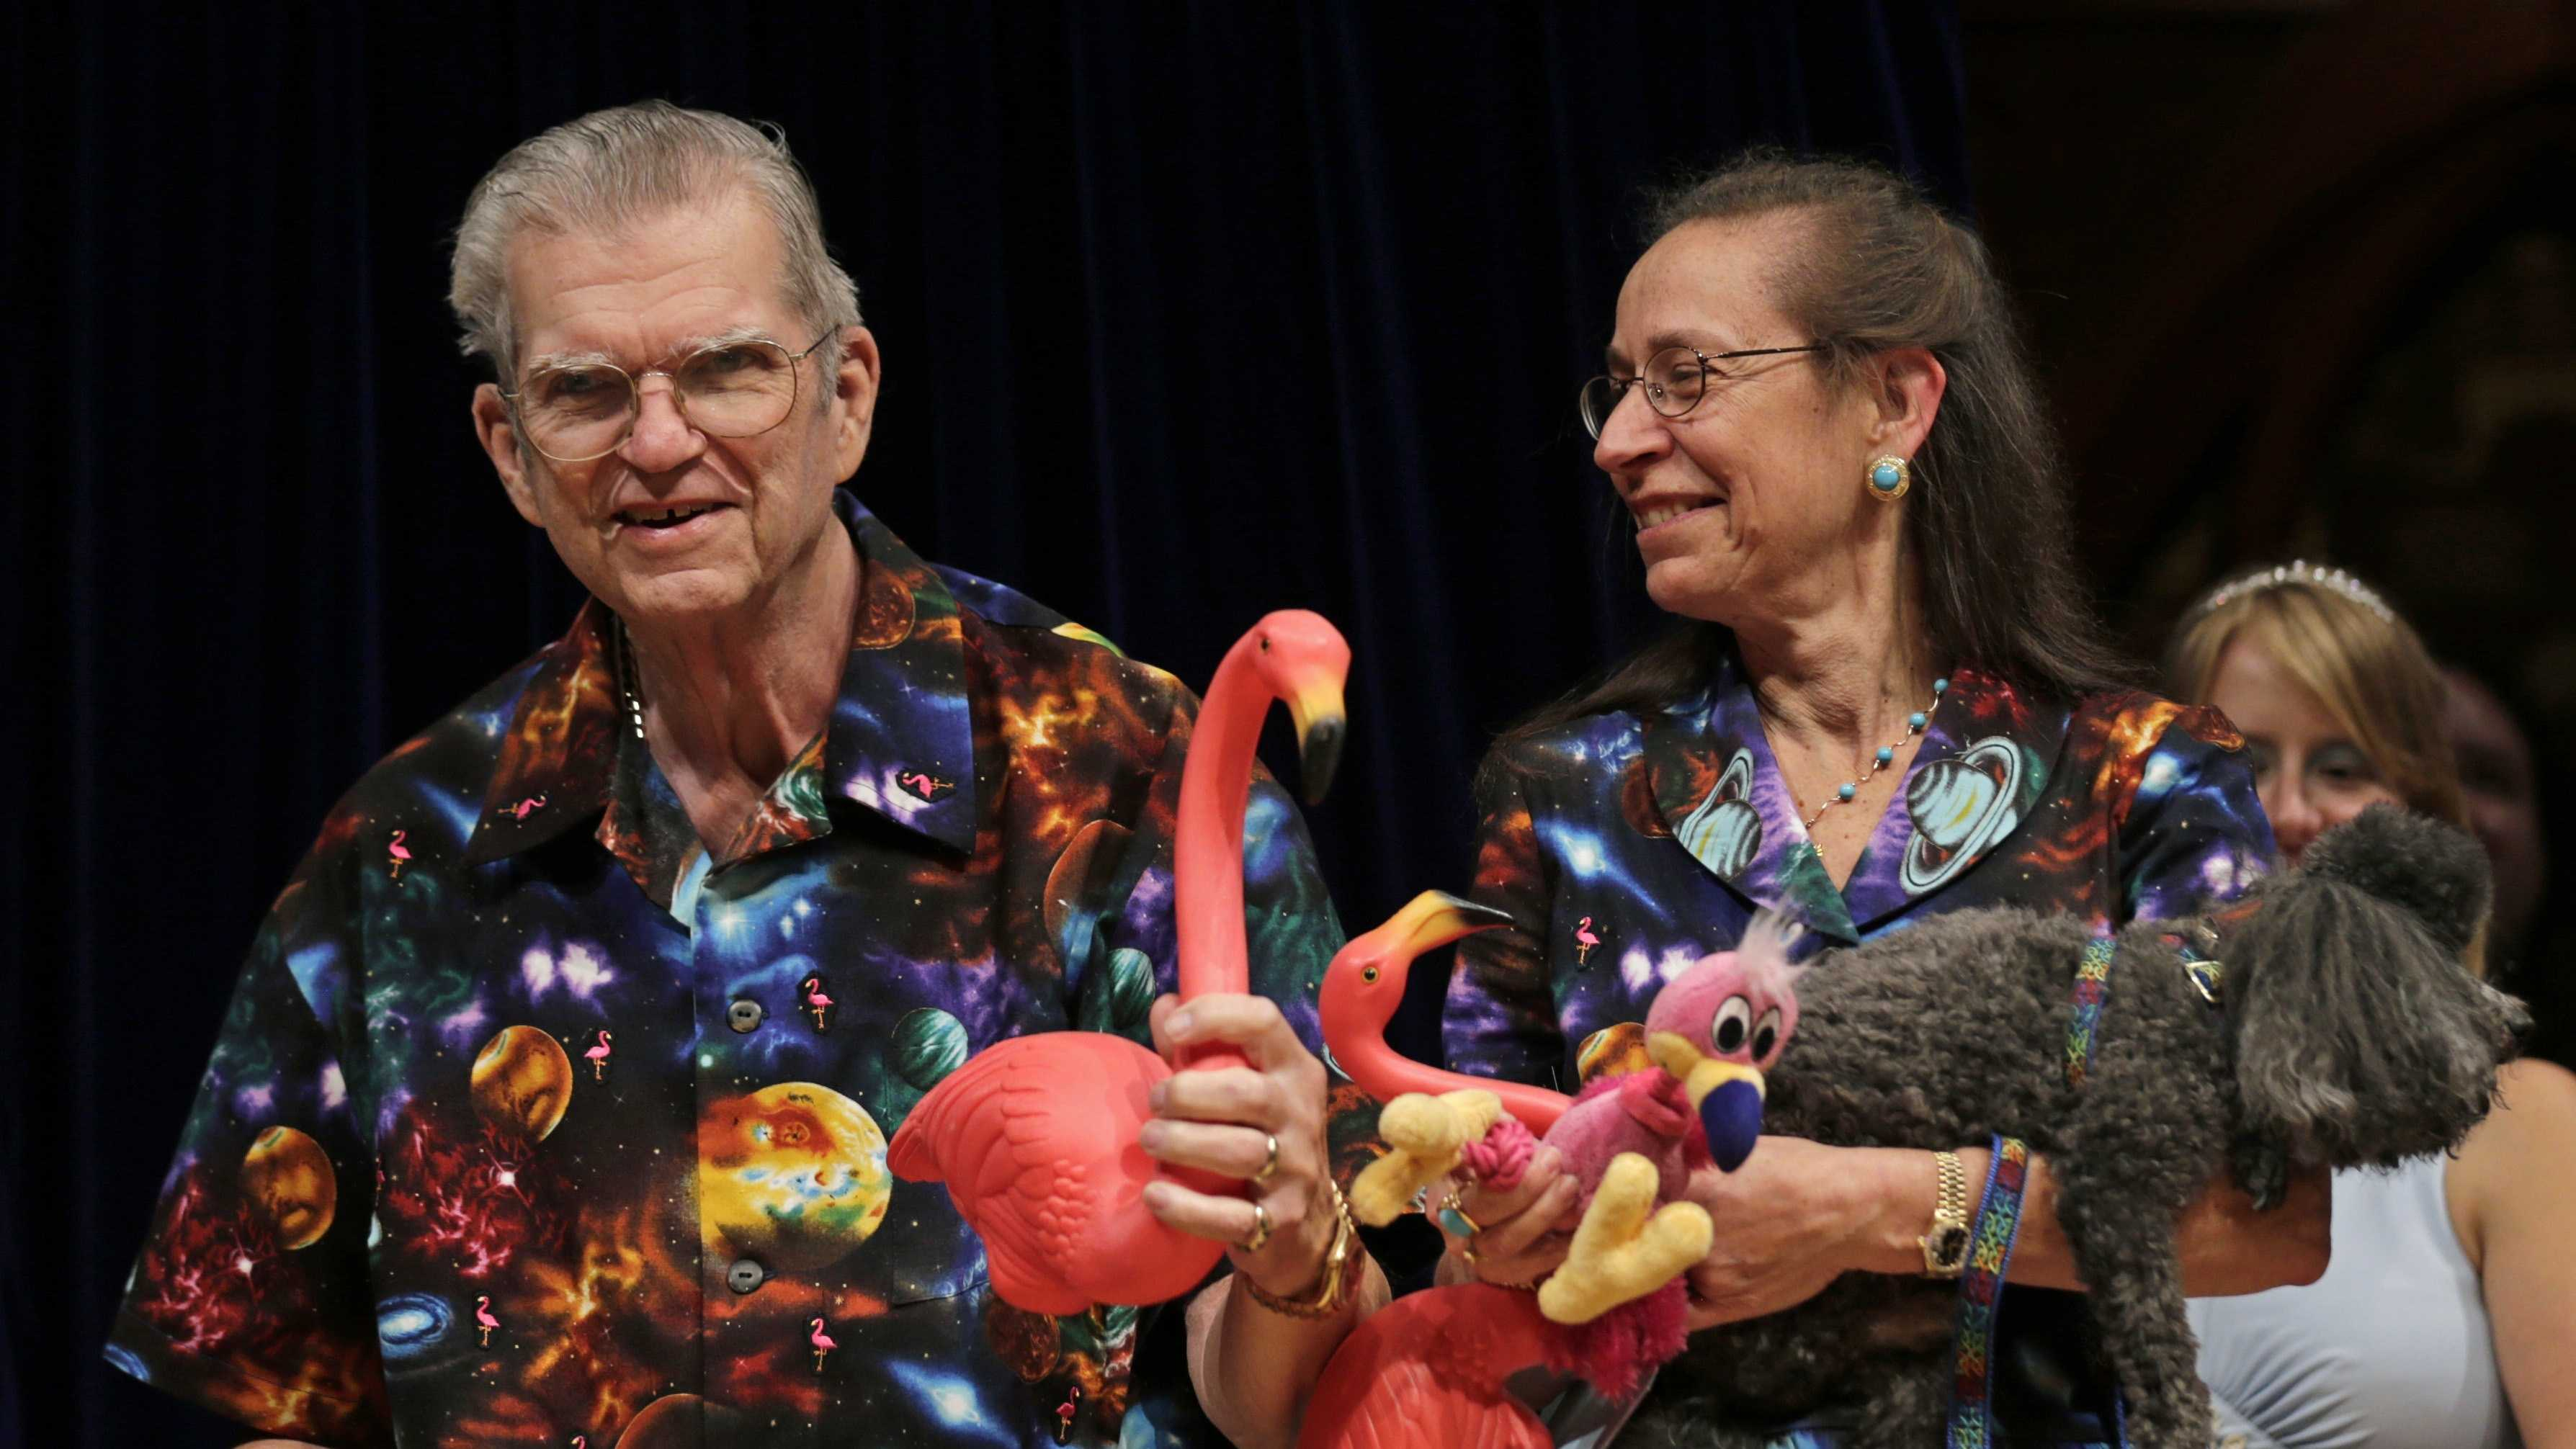 Artist Don Featherstone, 1996 Ig Nobel Prize winner and creator of the plastic pink flamingo lawn ornament, poses with his Nancy while being honored as a past recipient during a performance at the Ig Nobel Prize ceremony at Harvard University, in Cambridge, Mass., Thursday, Sept. 20, 2012.